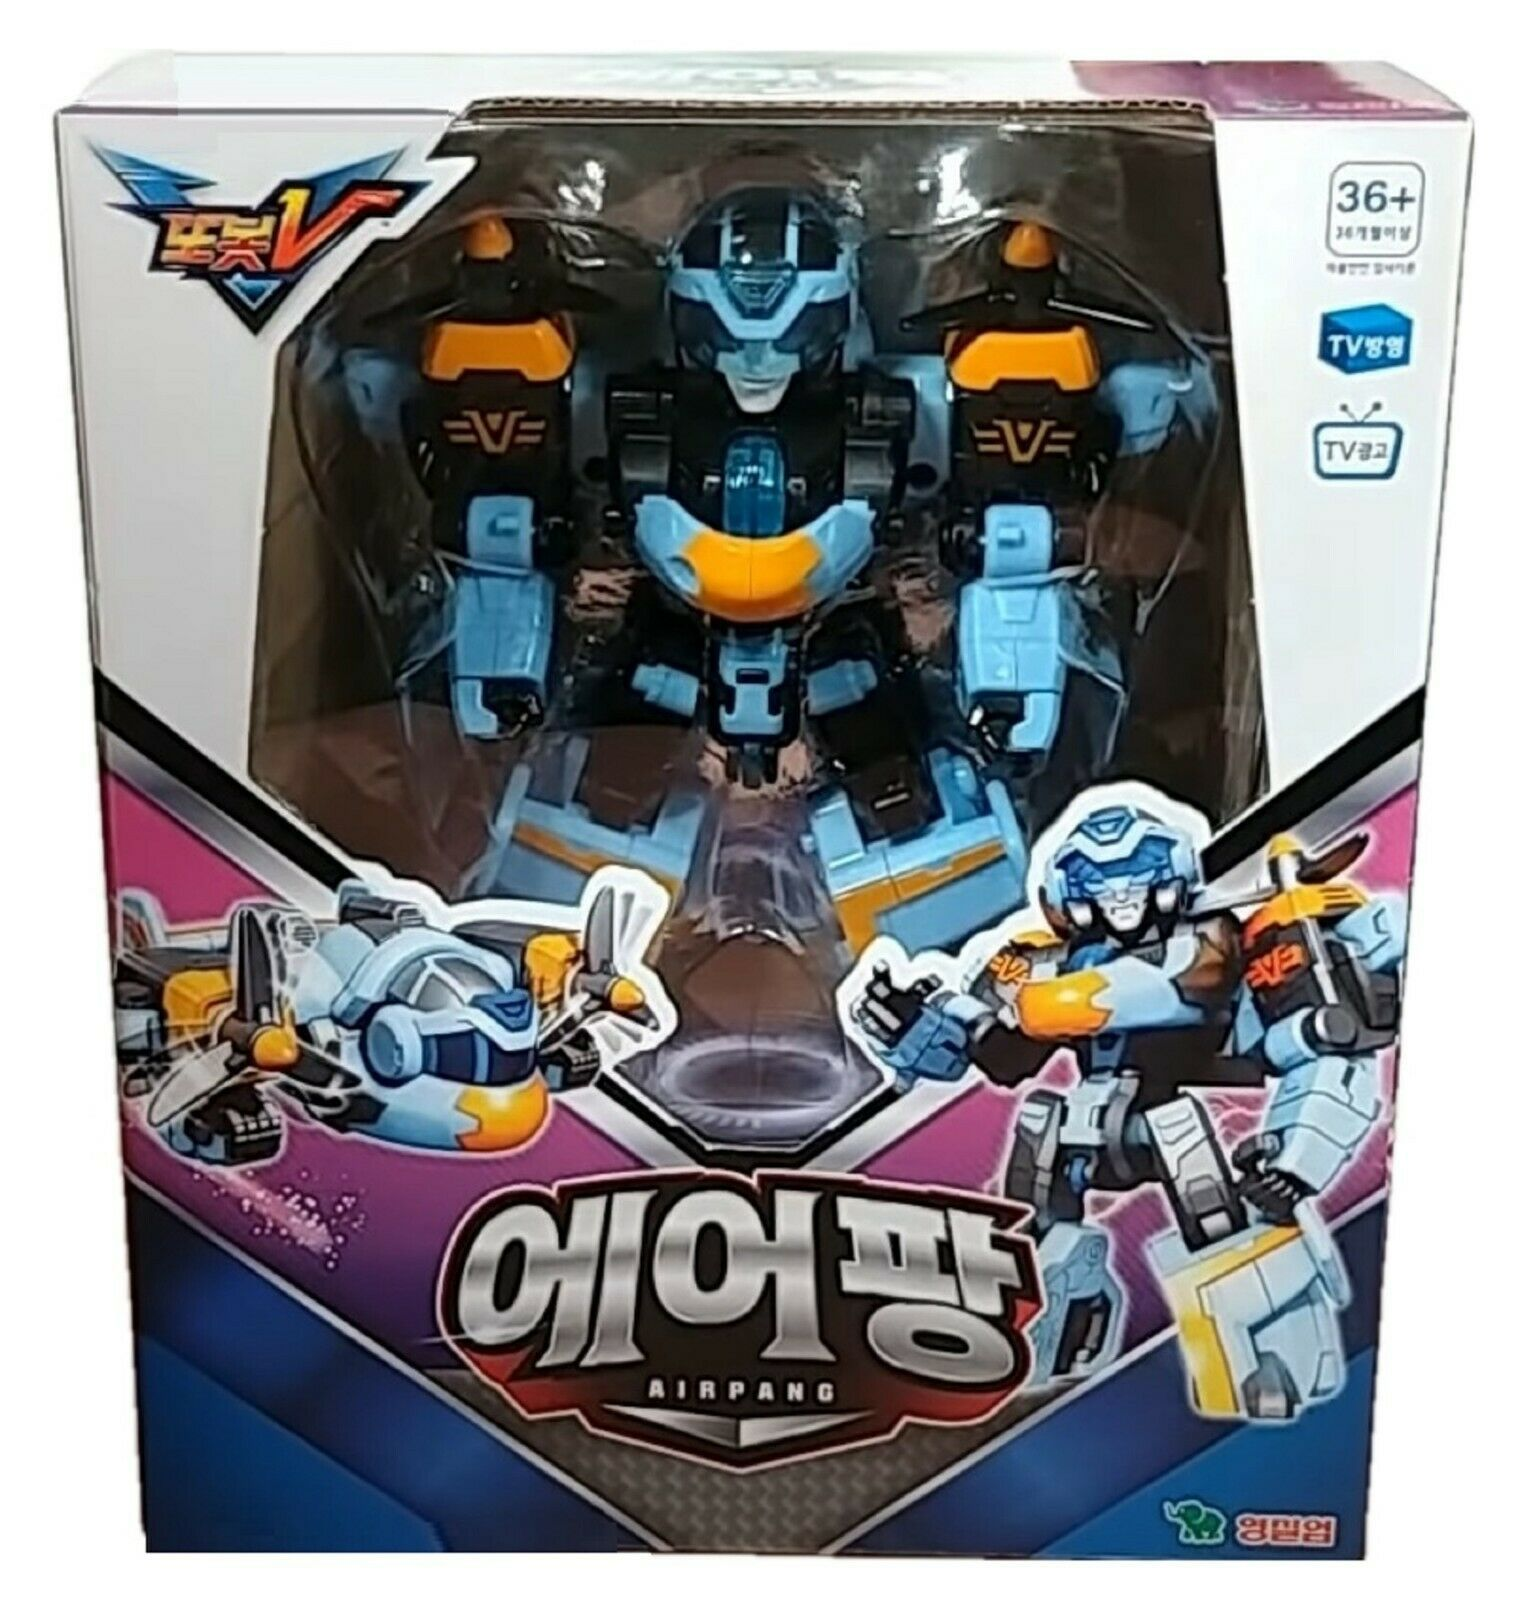 Tobot V Airpang Transformation Action Figure Airplane Vehicle Toy